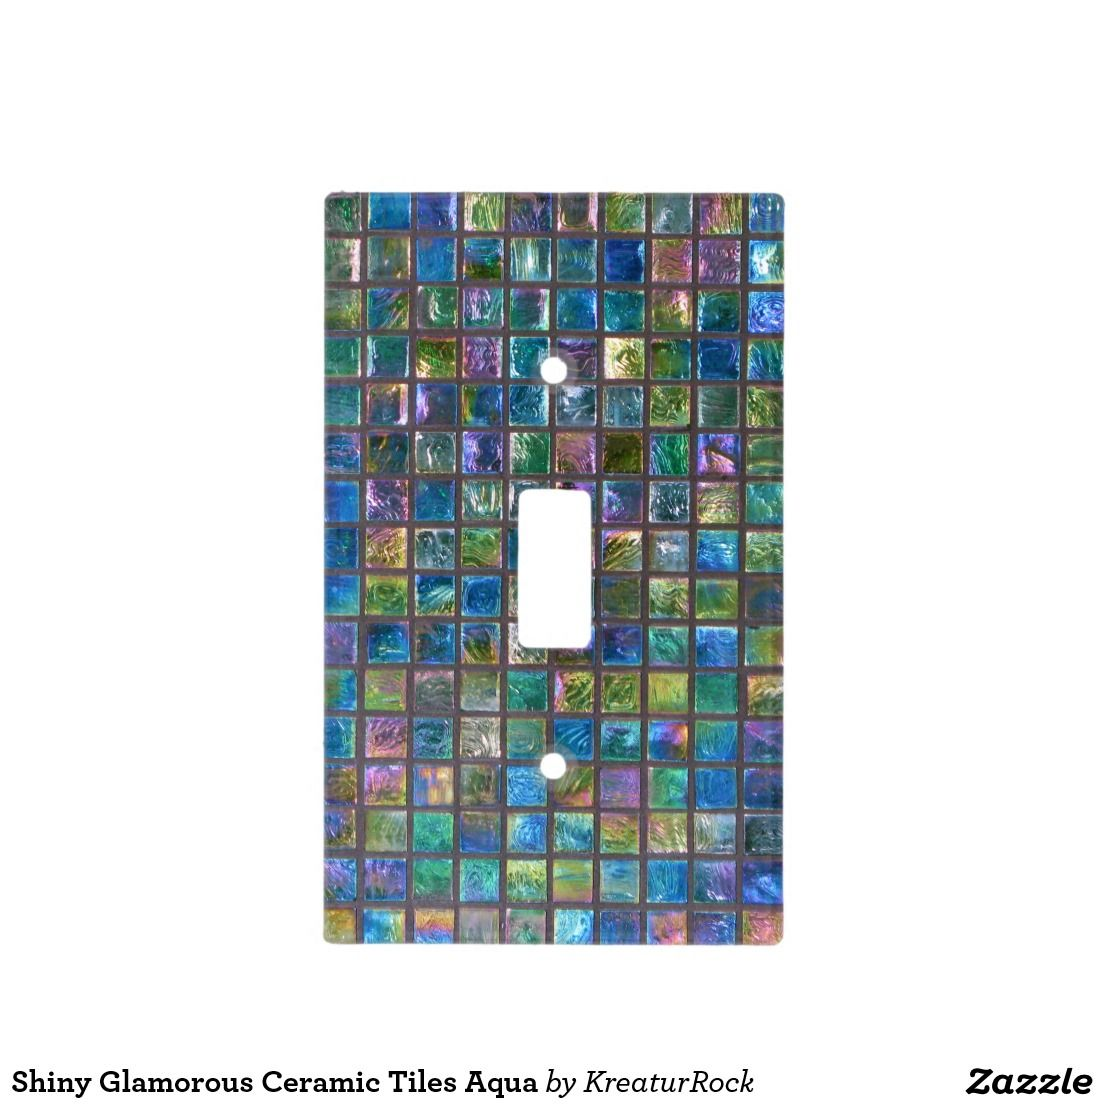 Shiny Glamorous Ceramic Tiles Aqua Light Switch Cover